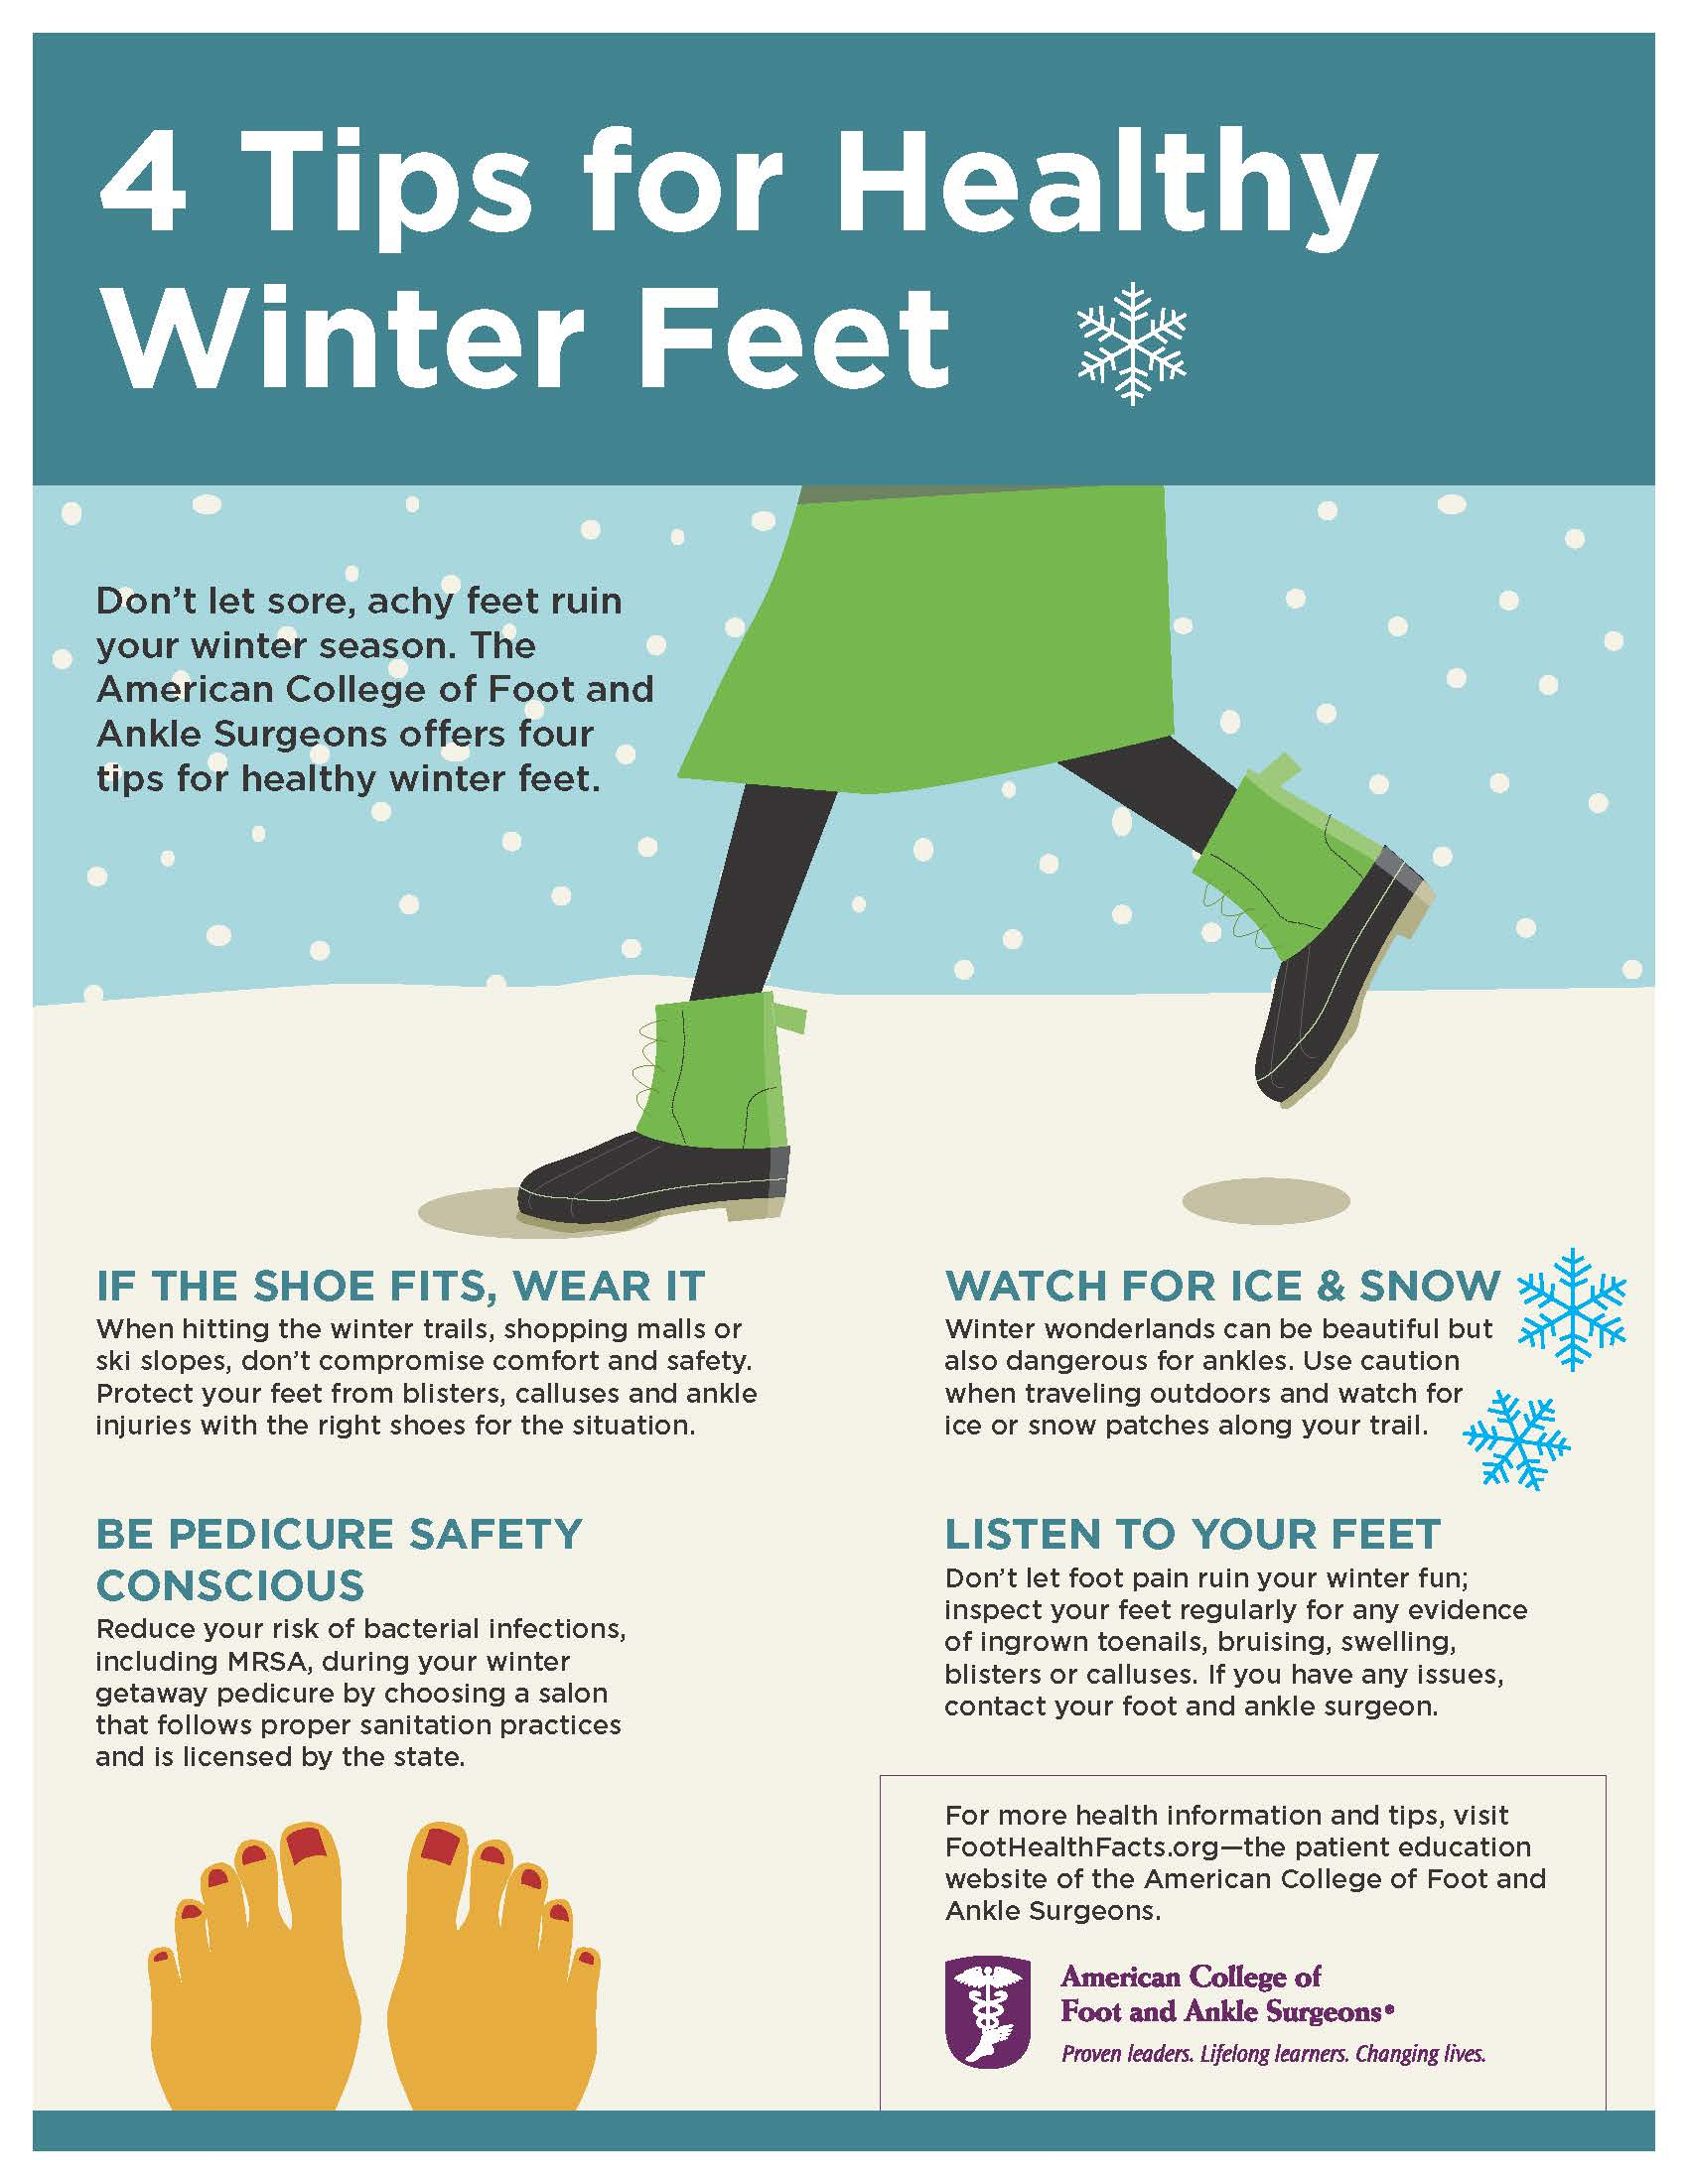 4 Tips for Healthy Winter Feet